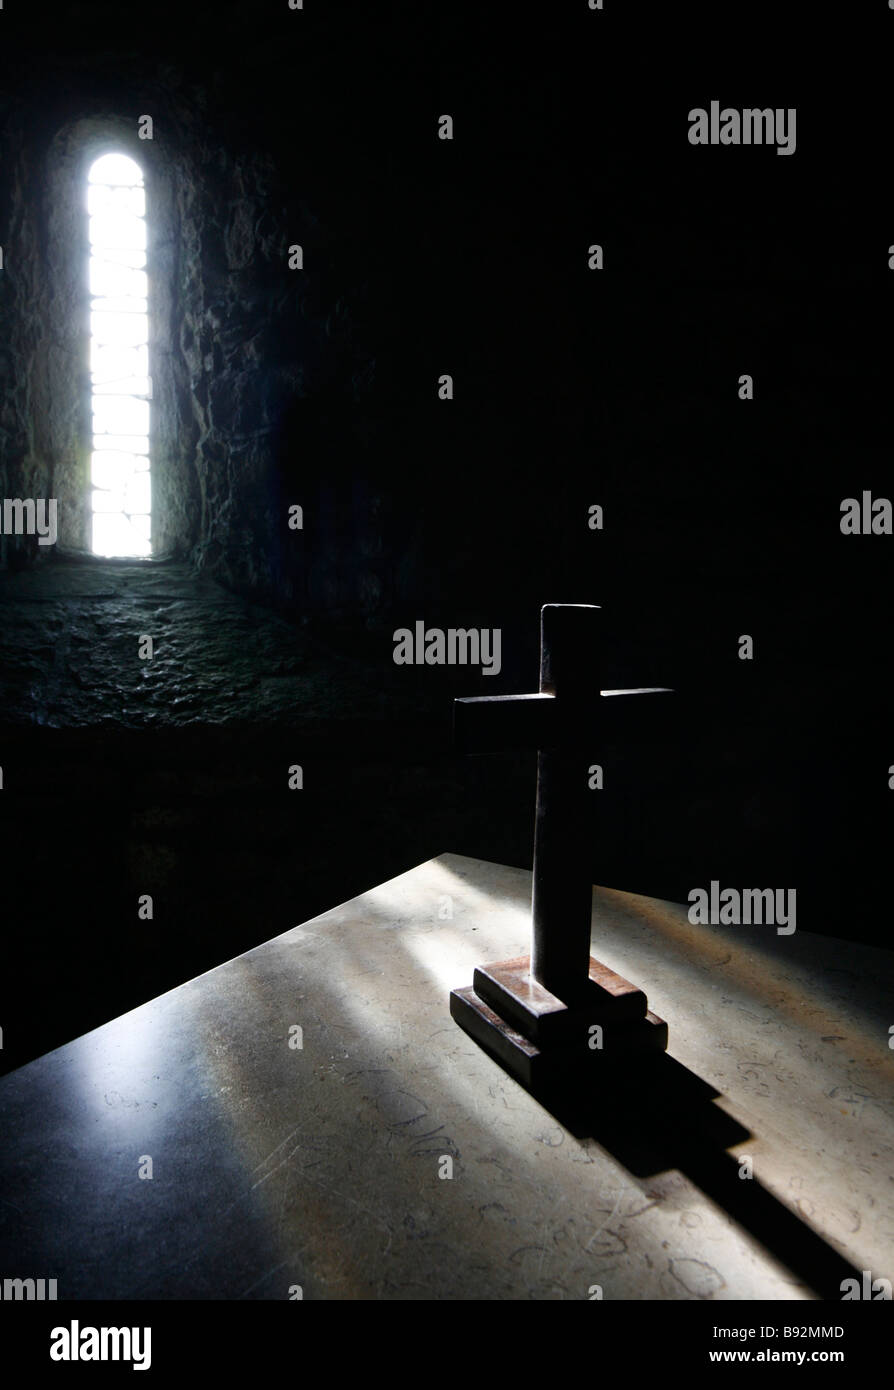 Simple Wooden Cross on an Alter in a Chapel - Stock Image